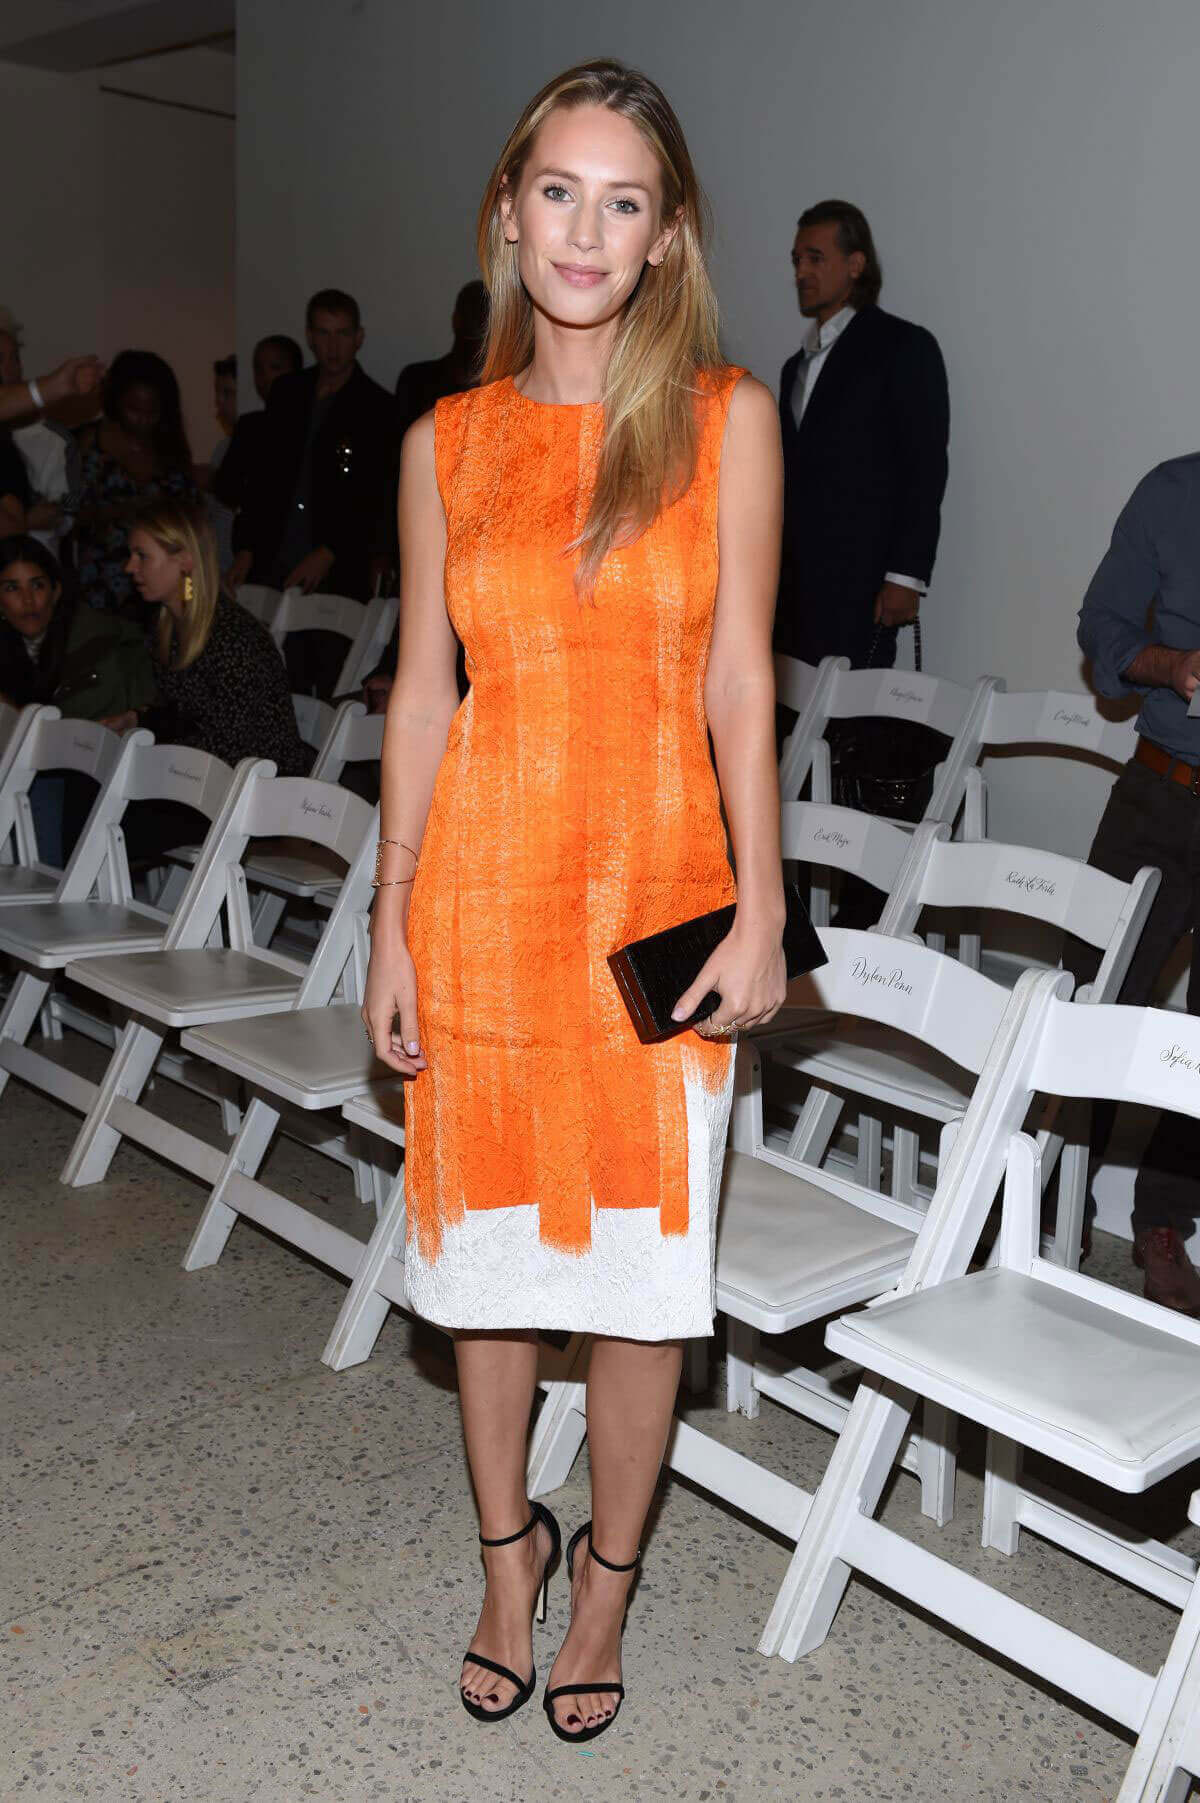 Dylan Penn at Oscar De La Renta Fashion Show at NYFW in New York